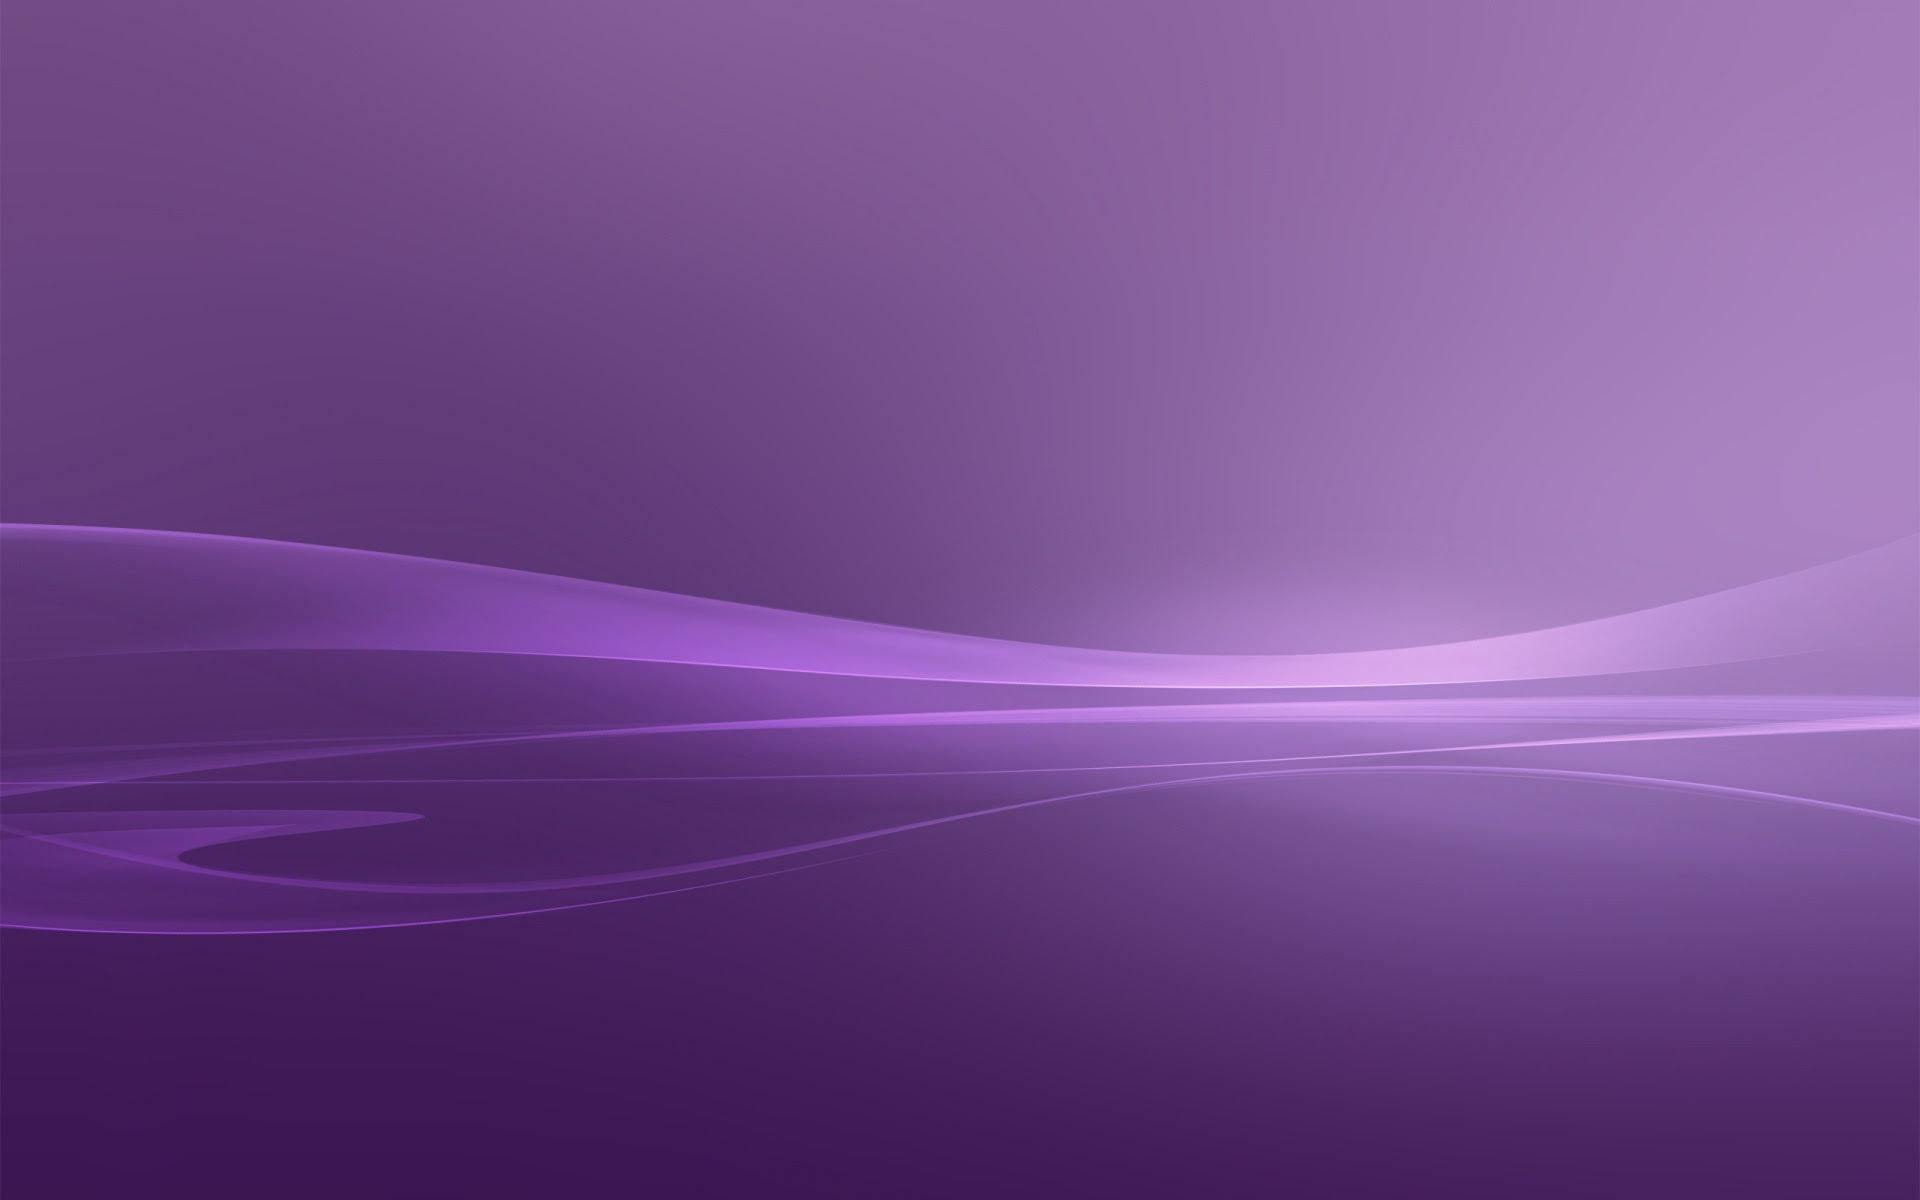 43 HD Purple Wallpaper\/Background Images To Download For Free